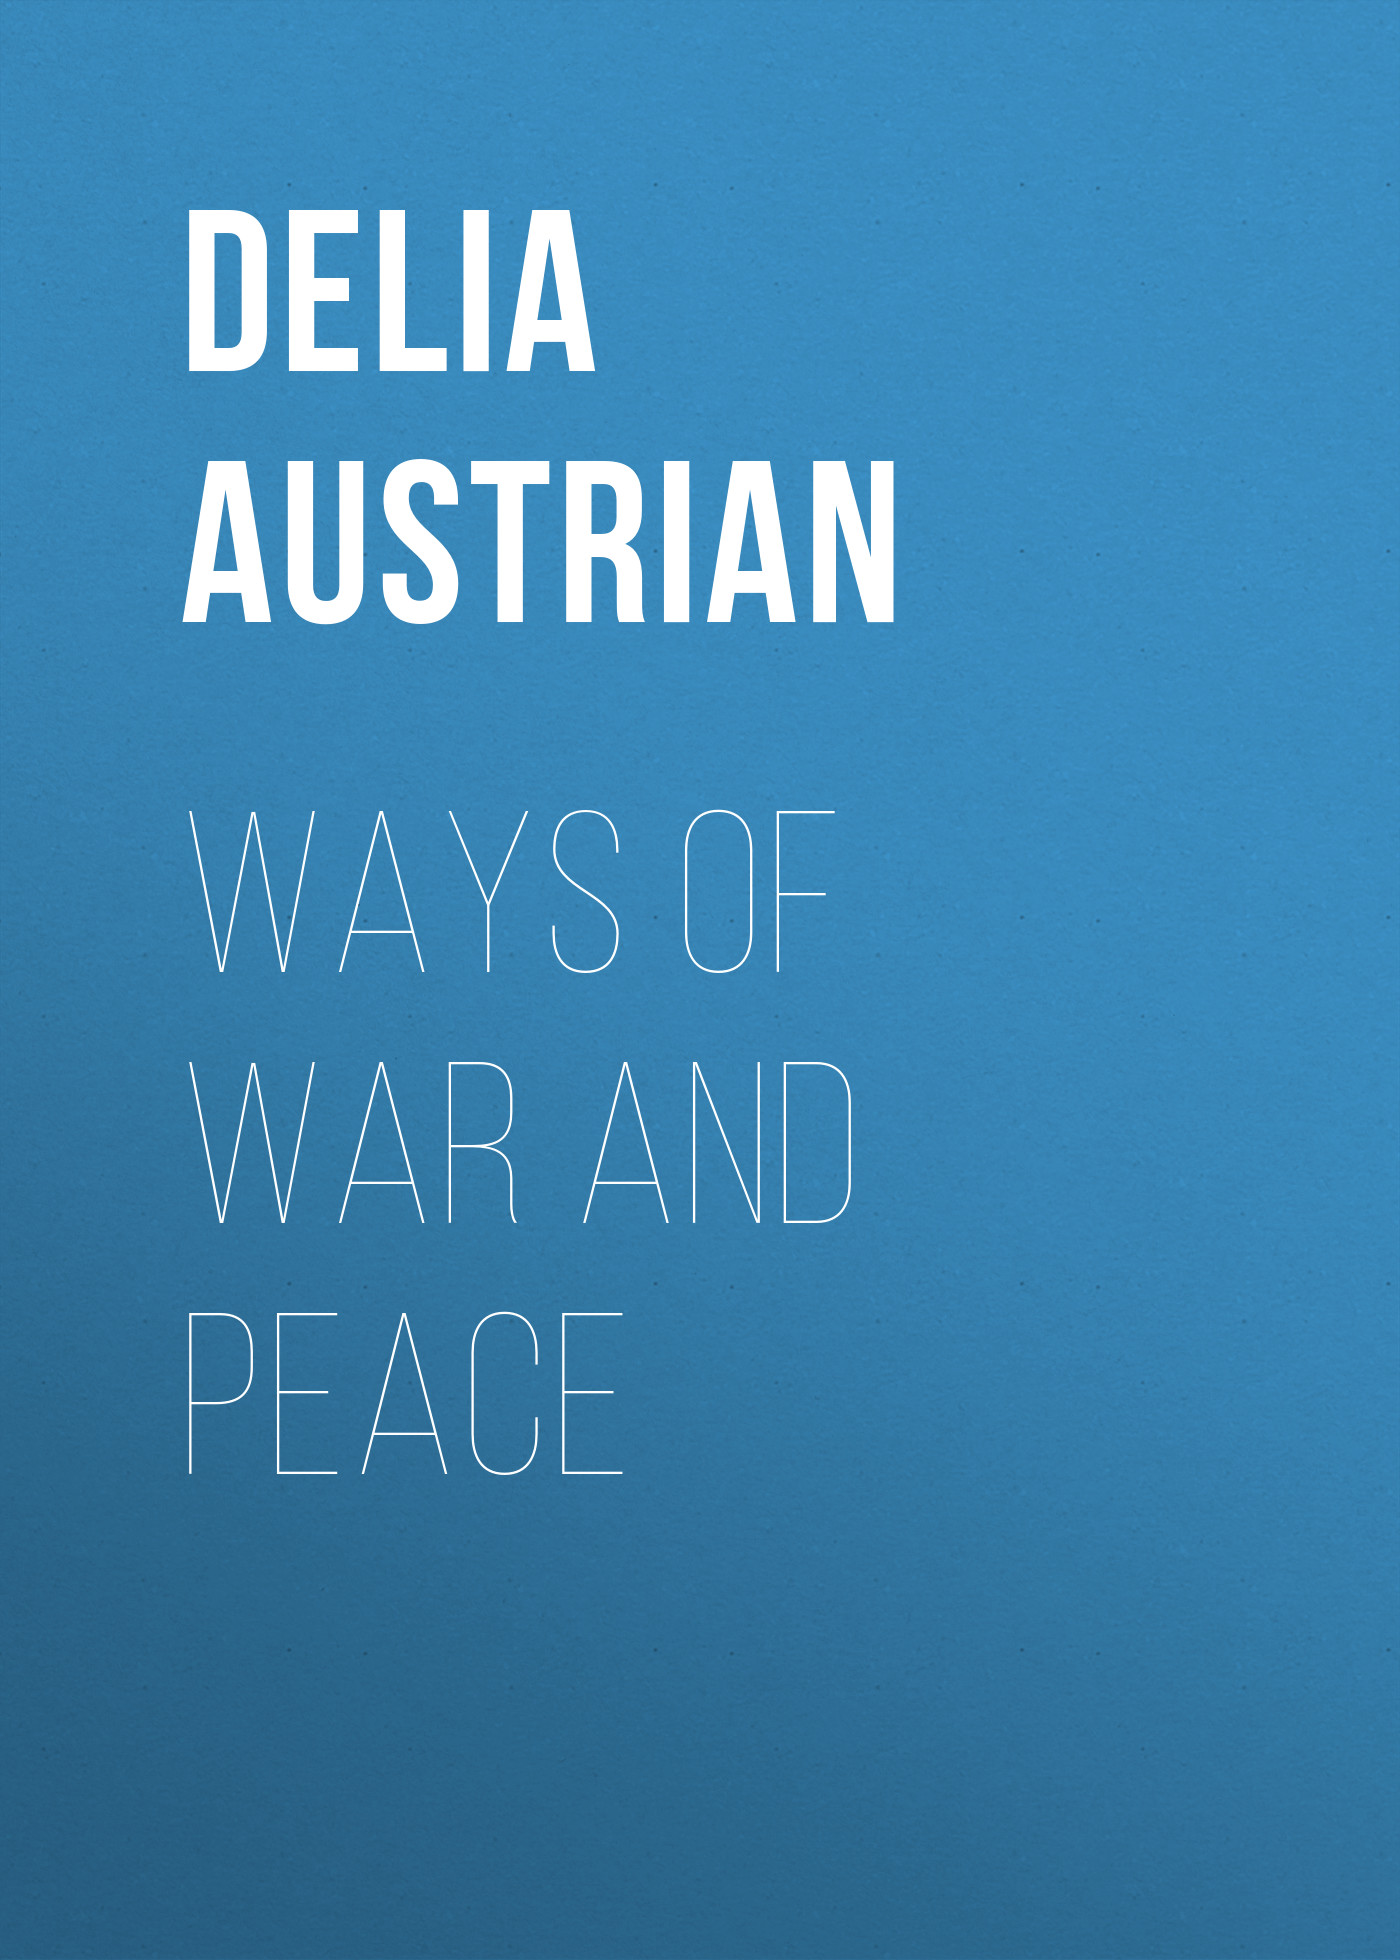 Austrian Delia Ways of War and Peace in peace and war